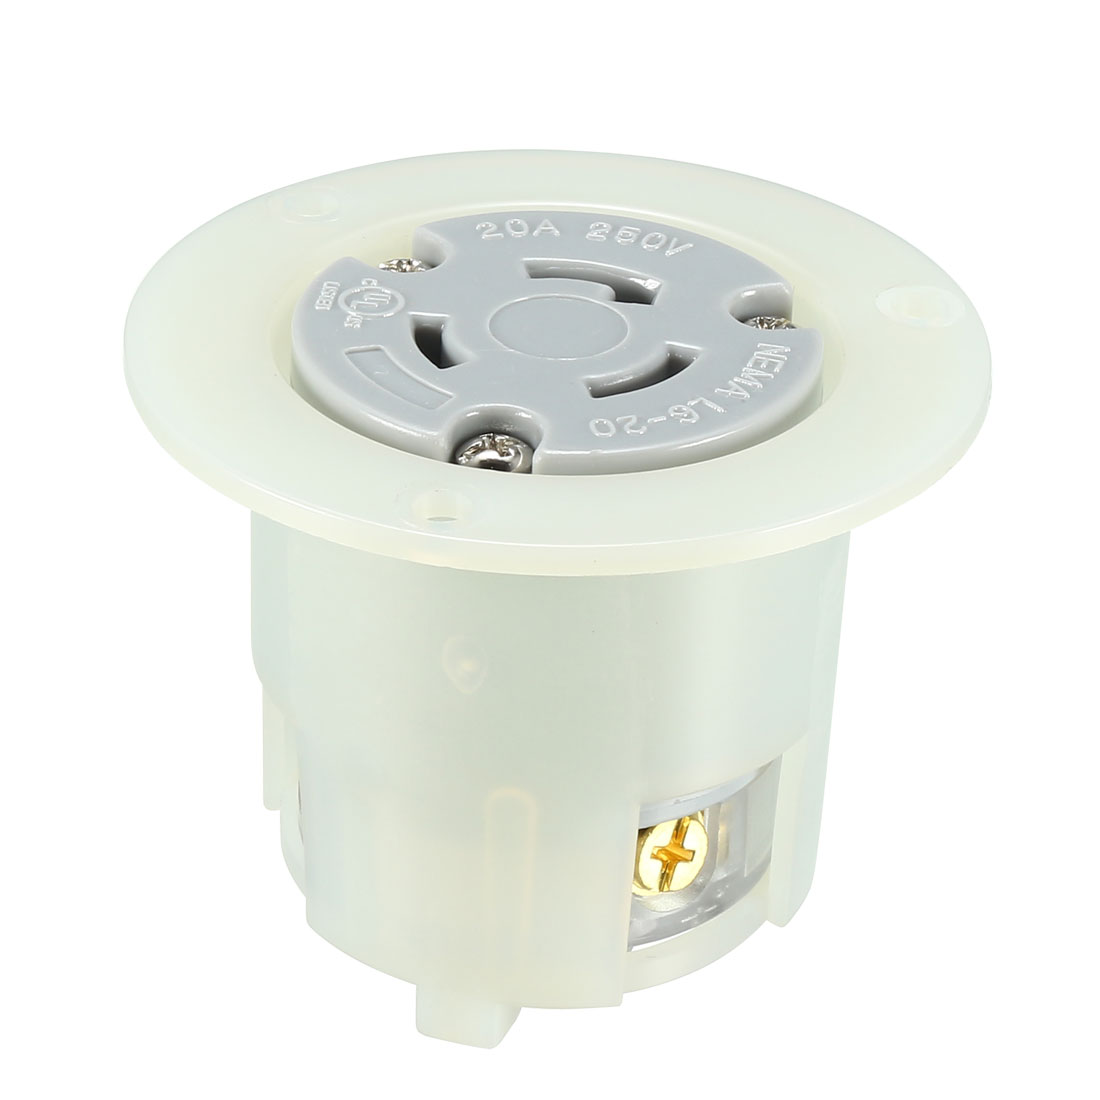 Locking Flanged Outlet NEMA L6-20C, 20A 250VAC, 2 Pole 3 Wire Grounding